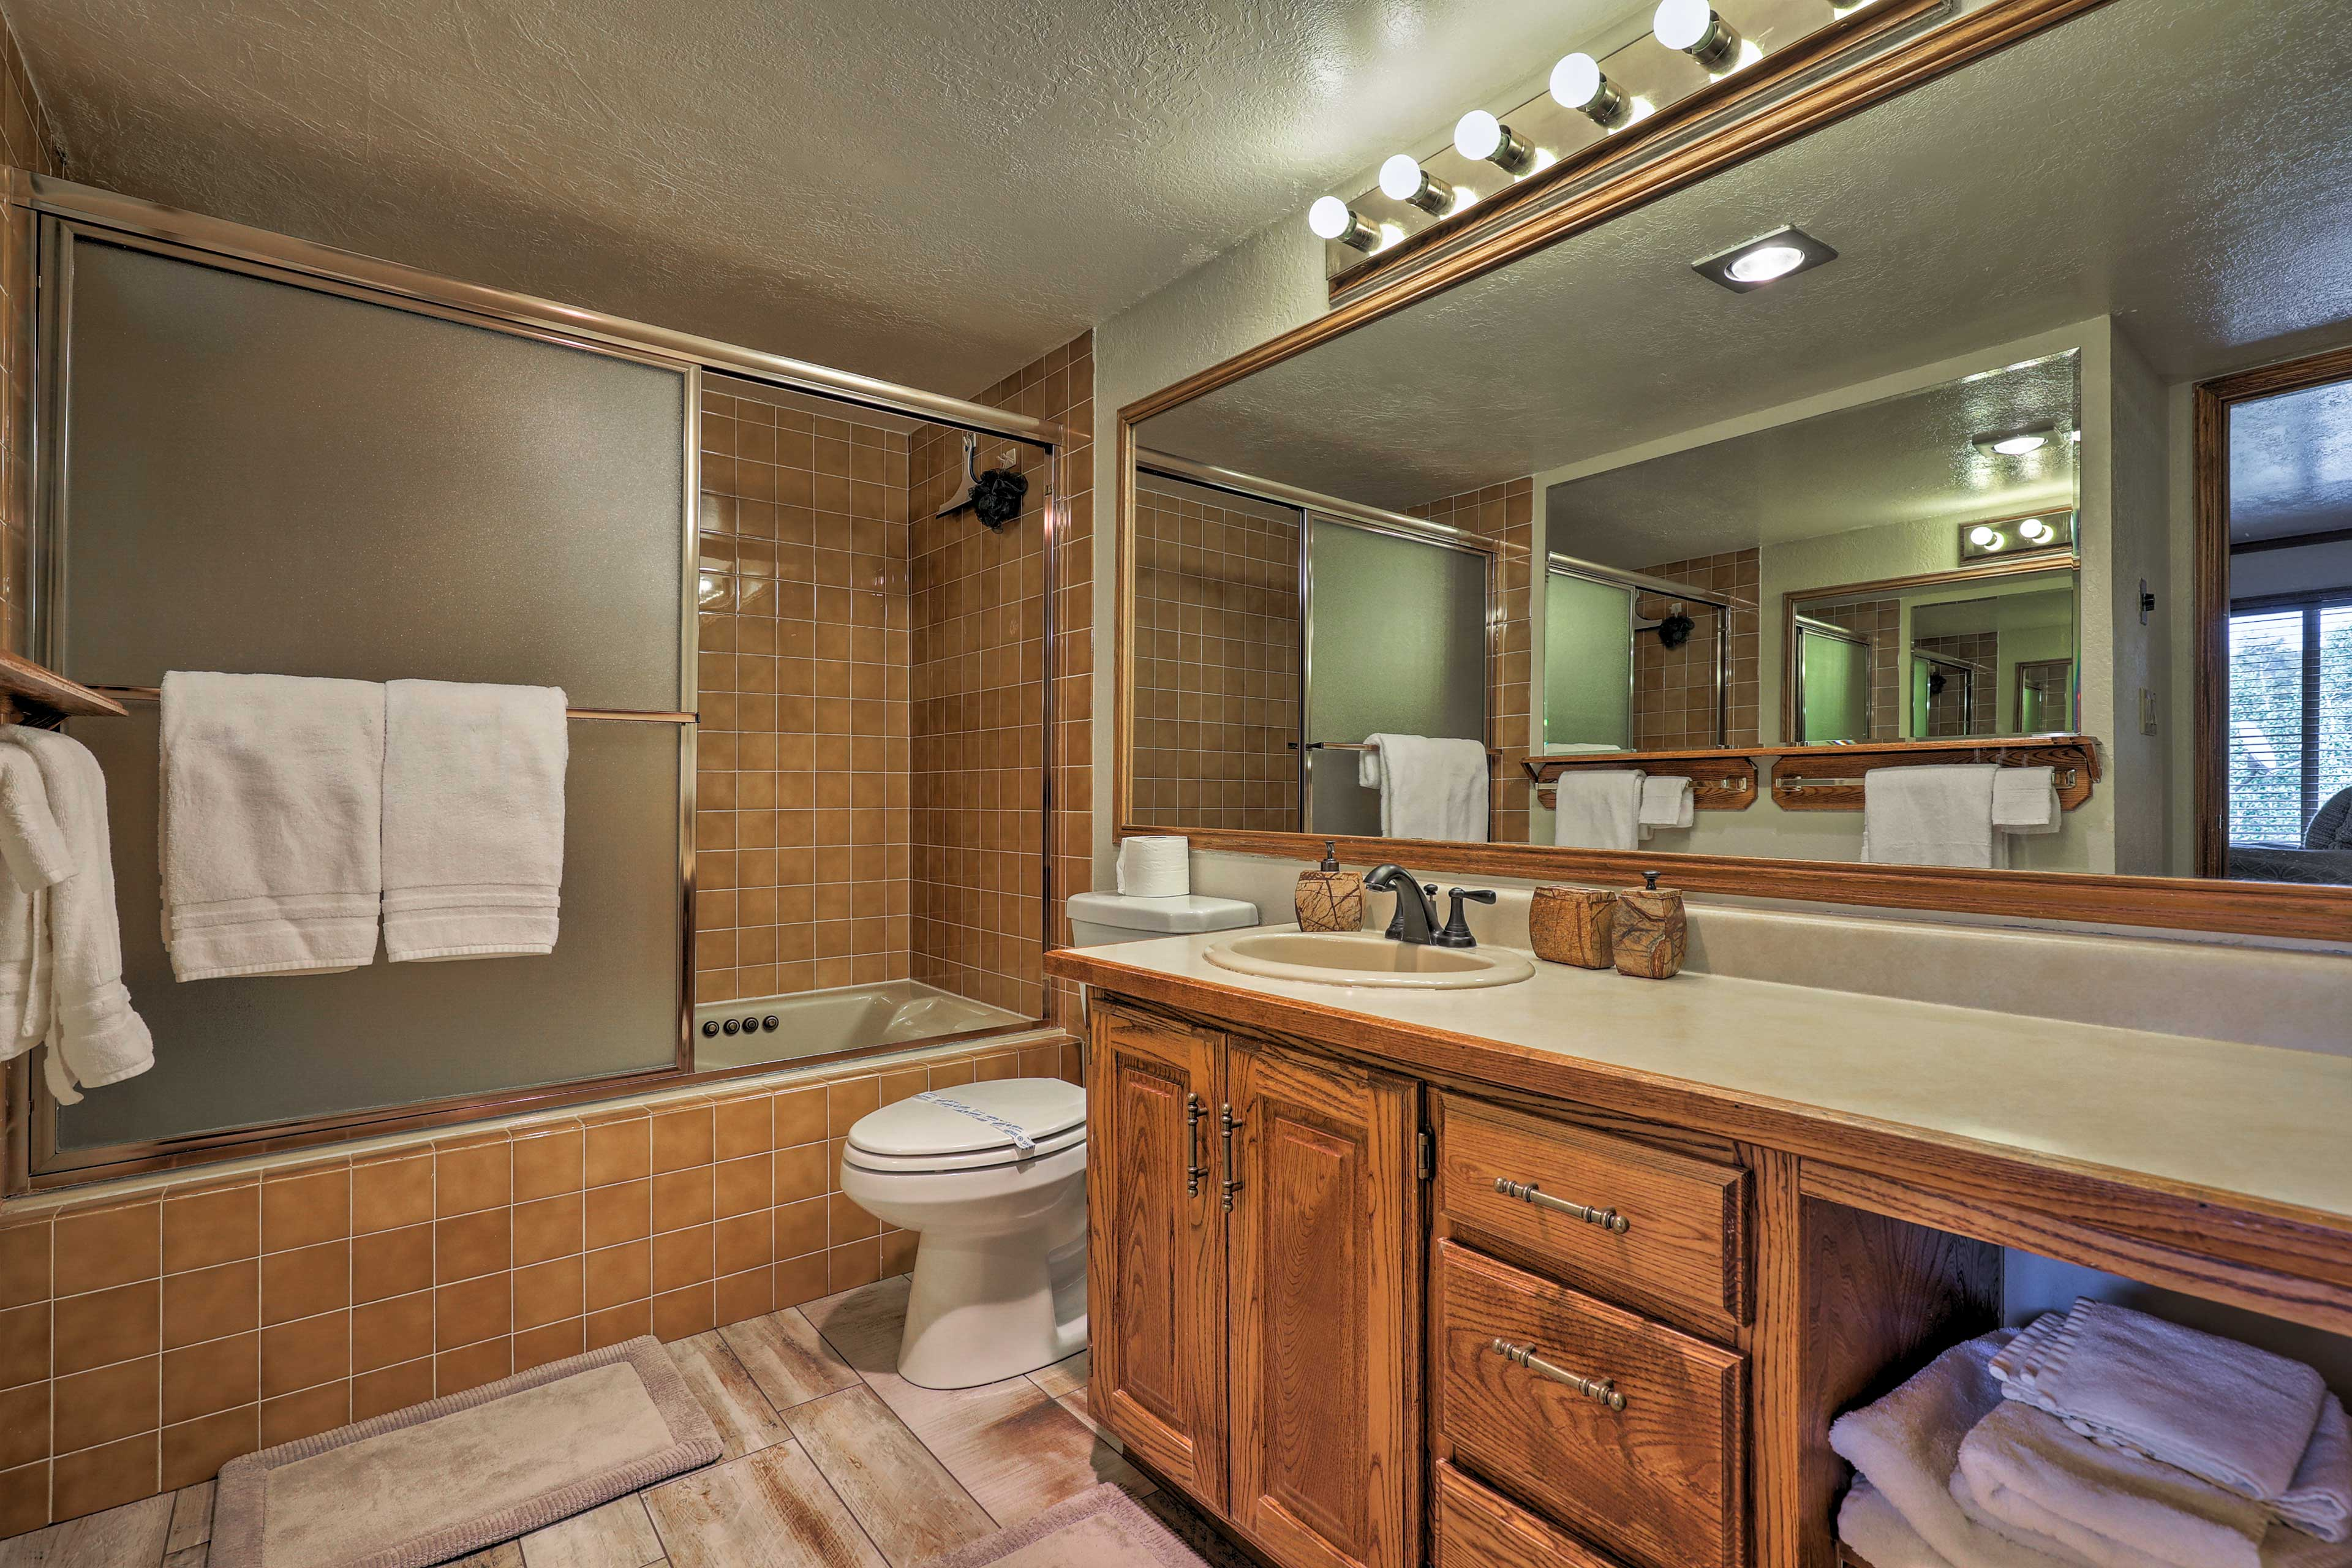 Hop in the shower/tub combo to clean up before bed in the master en-suite.